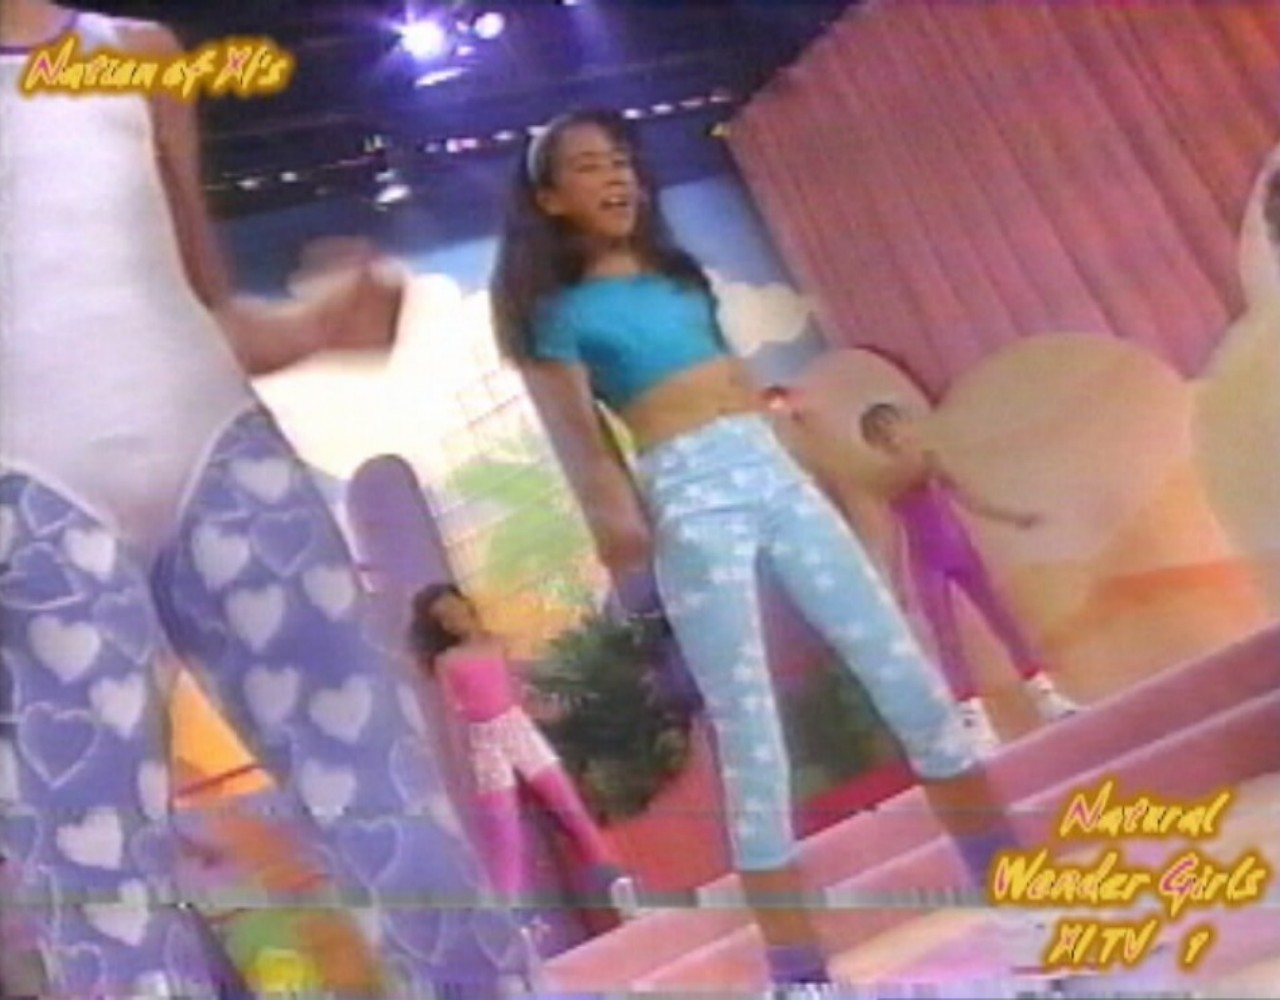 "Natural Wonder Girls! Dance Workout! ""Barbie Gets Nine Inch Nailed!"""